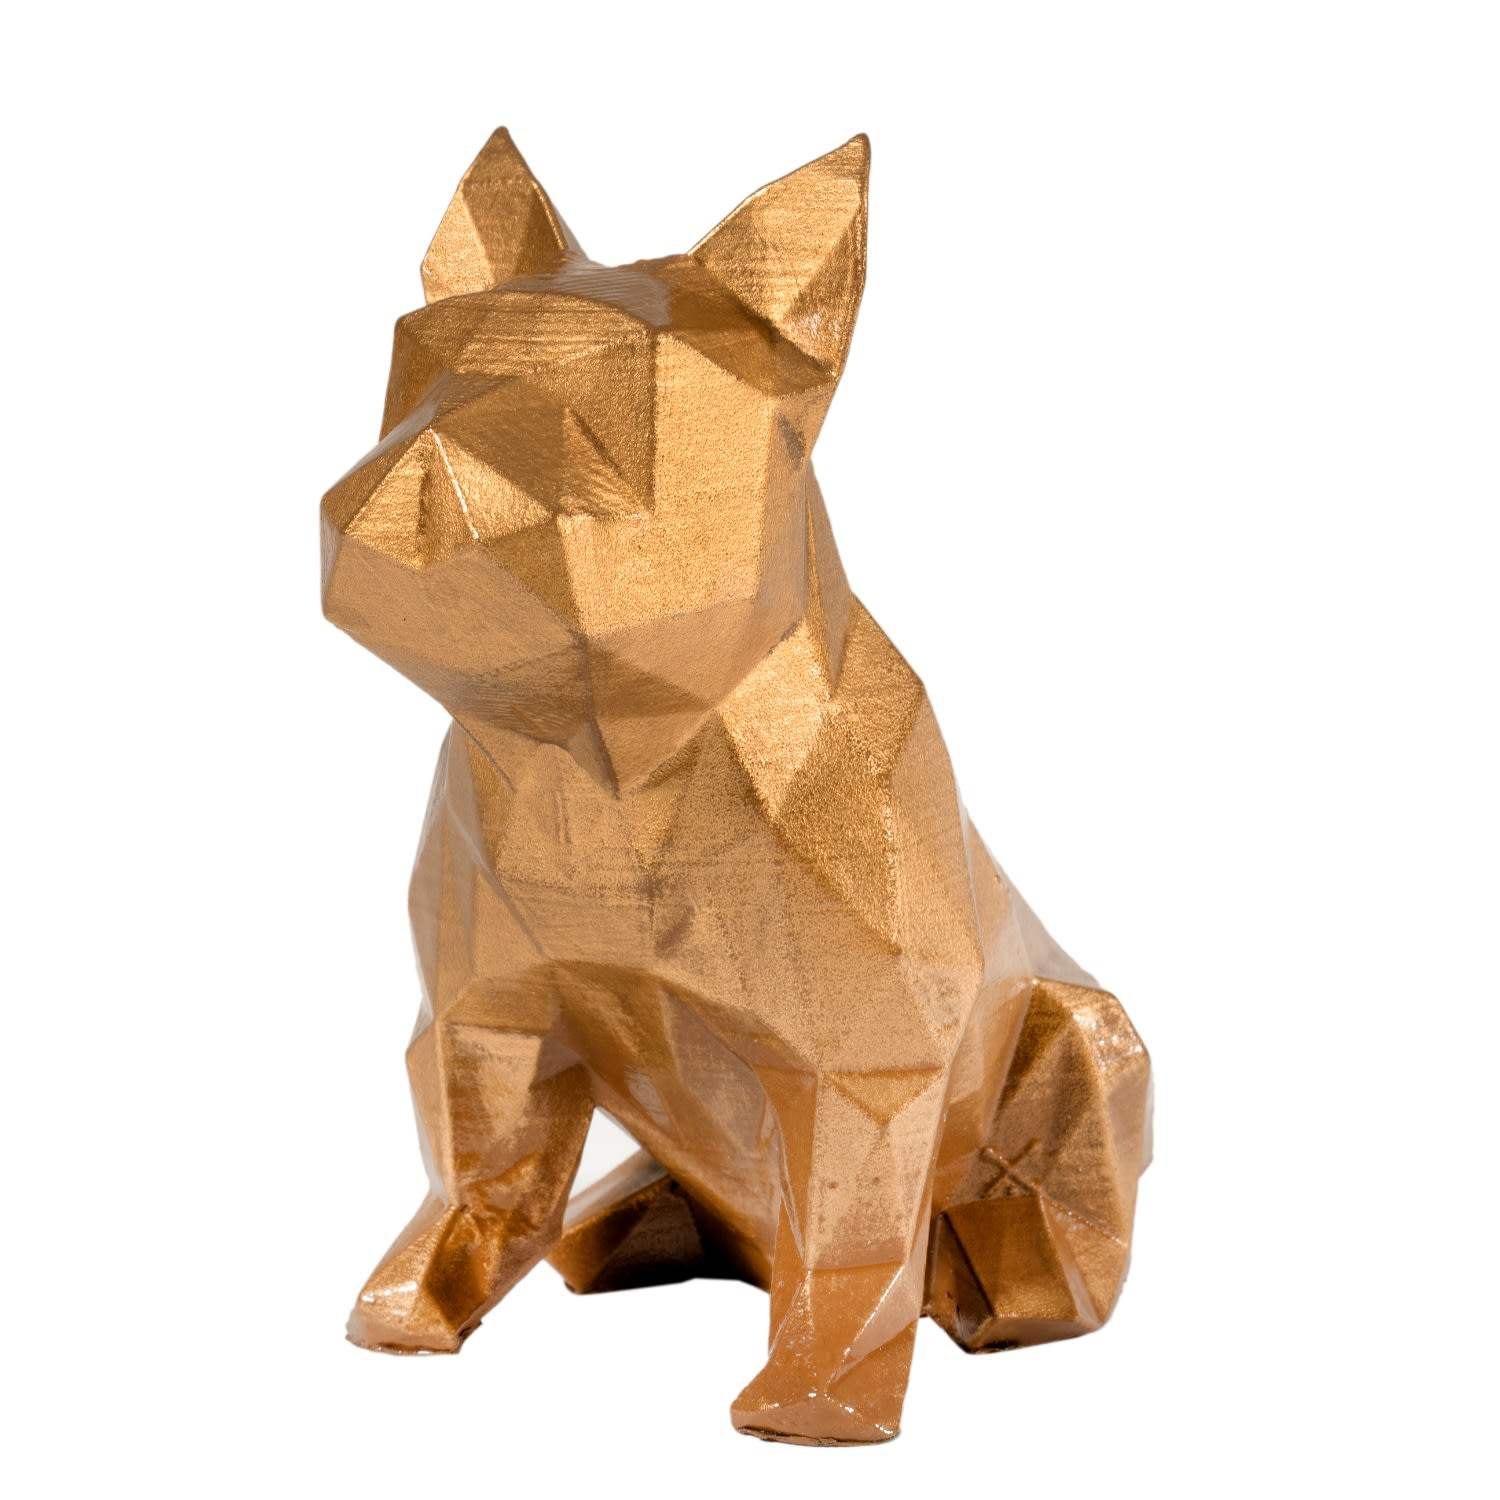 Geometric Dog Statue French Bulldog Sculpture